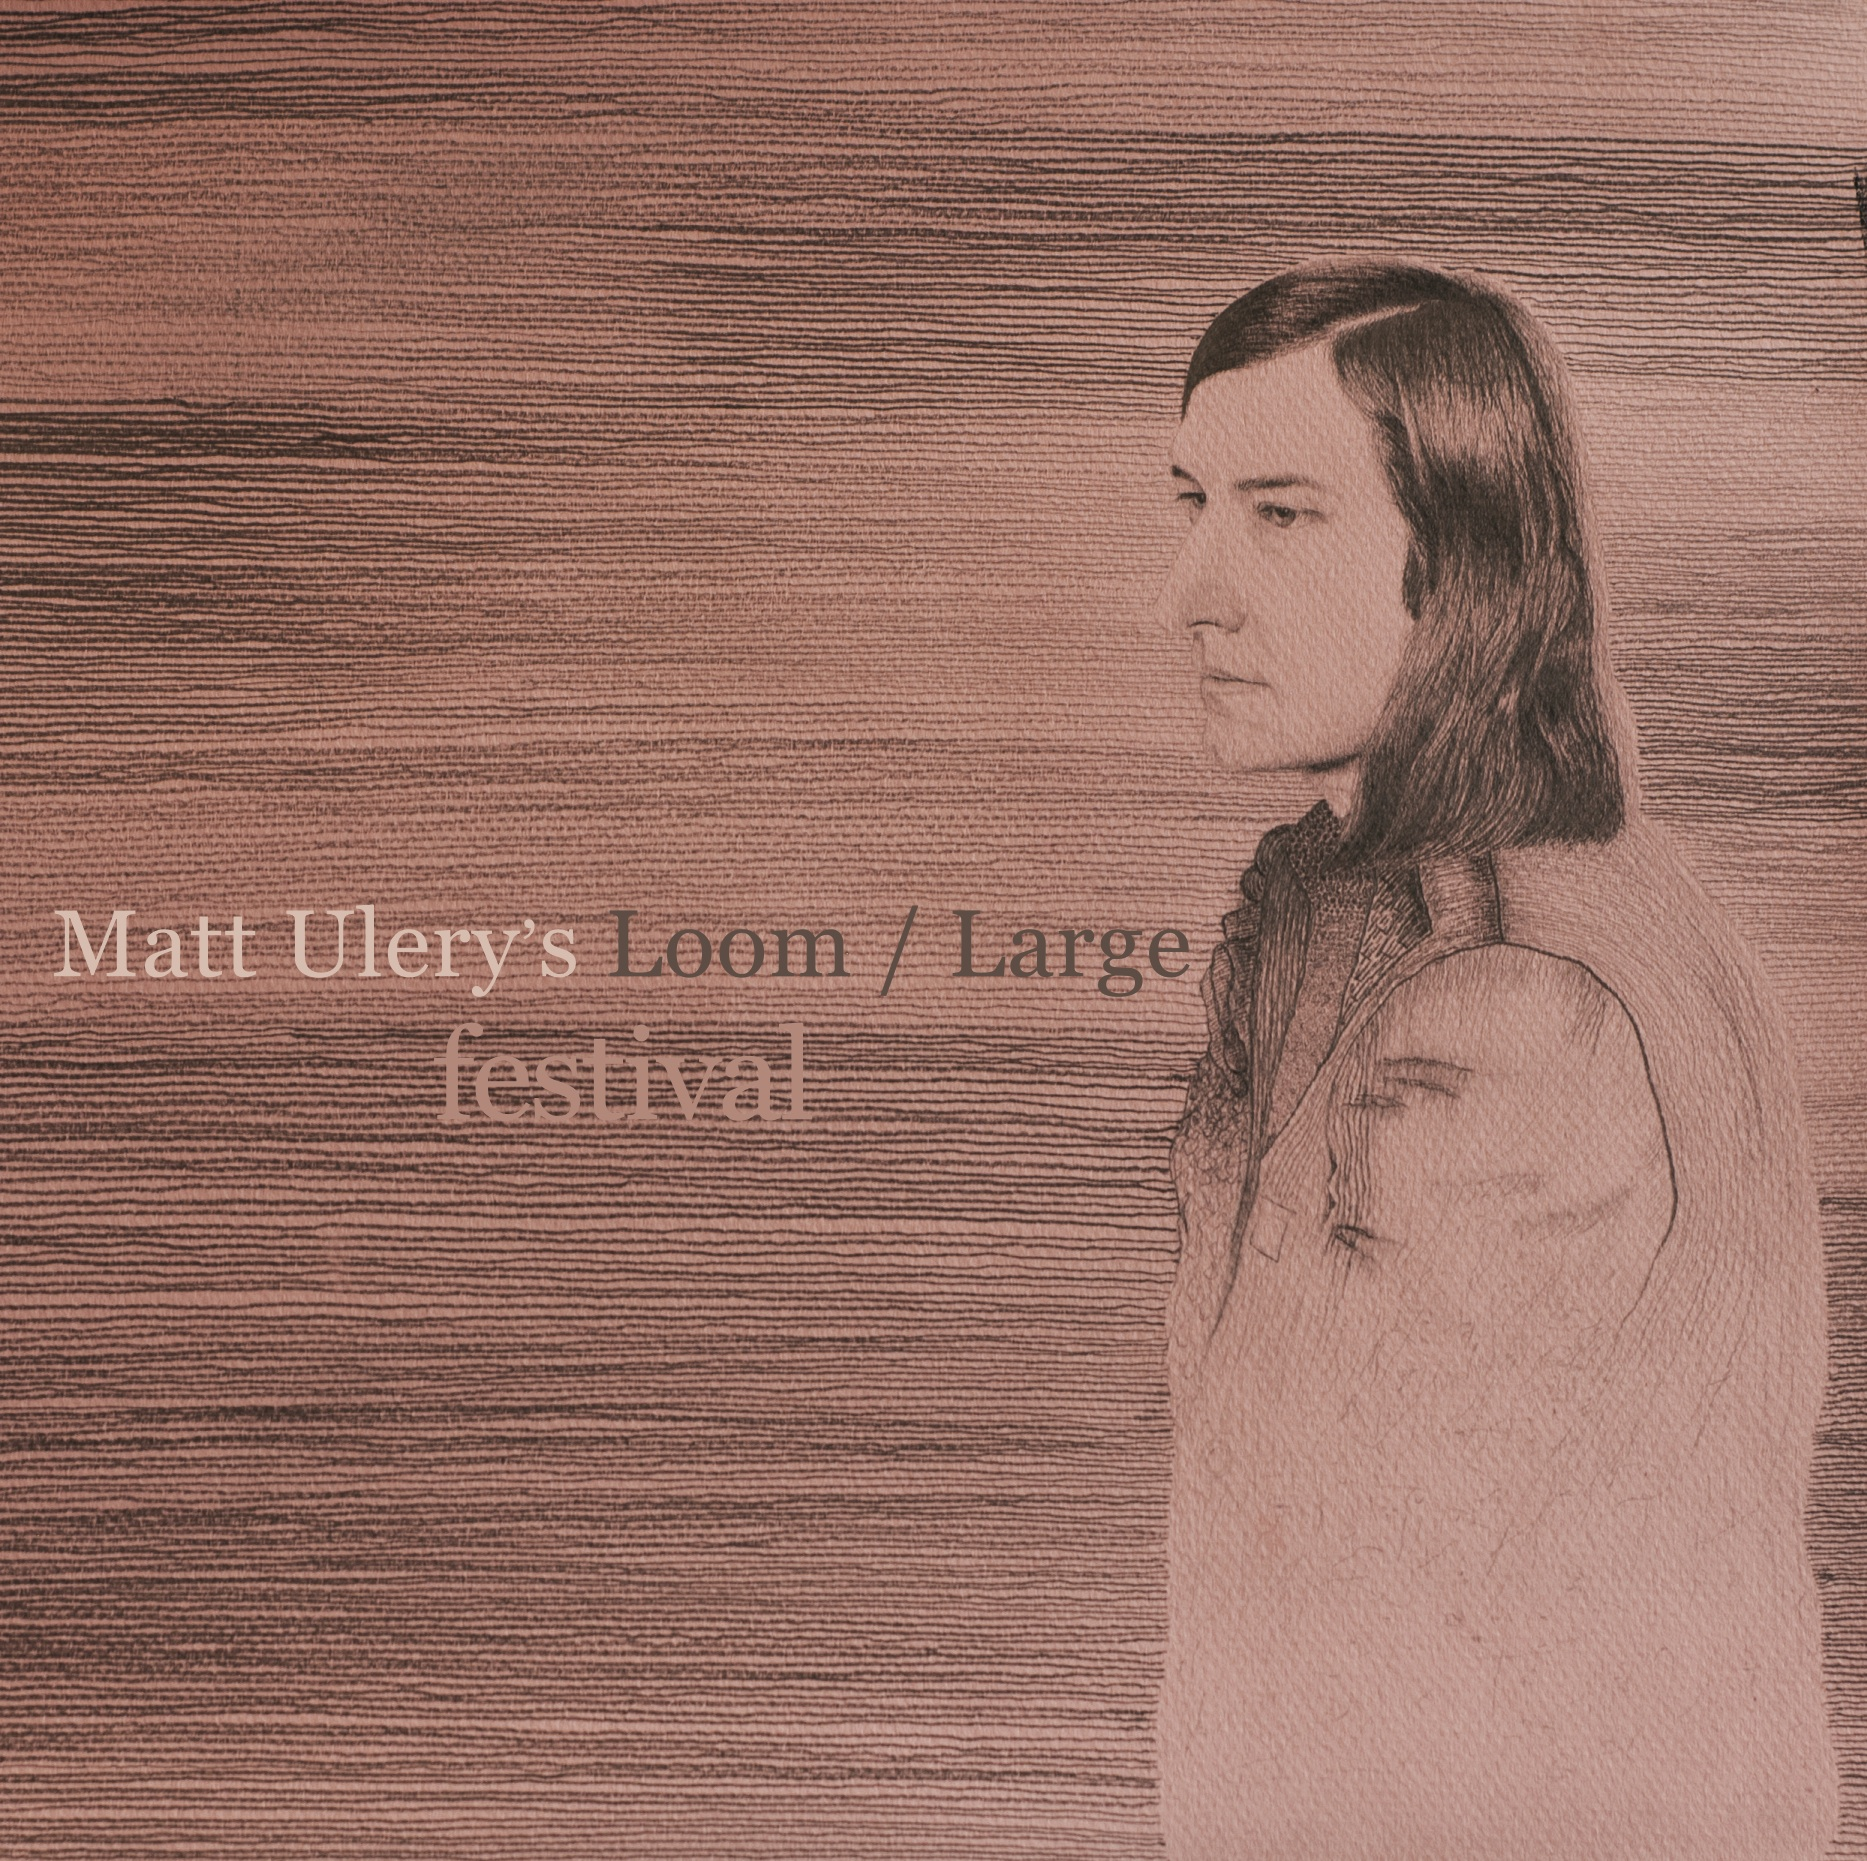 Matt Ulery's 'Festival' Reviewed in Chicago Jazz Magazine